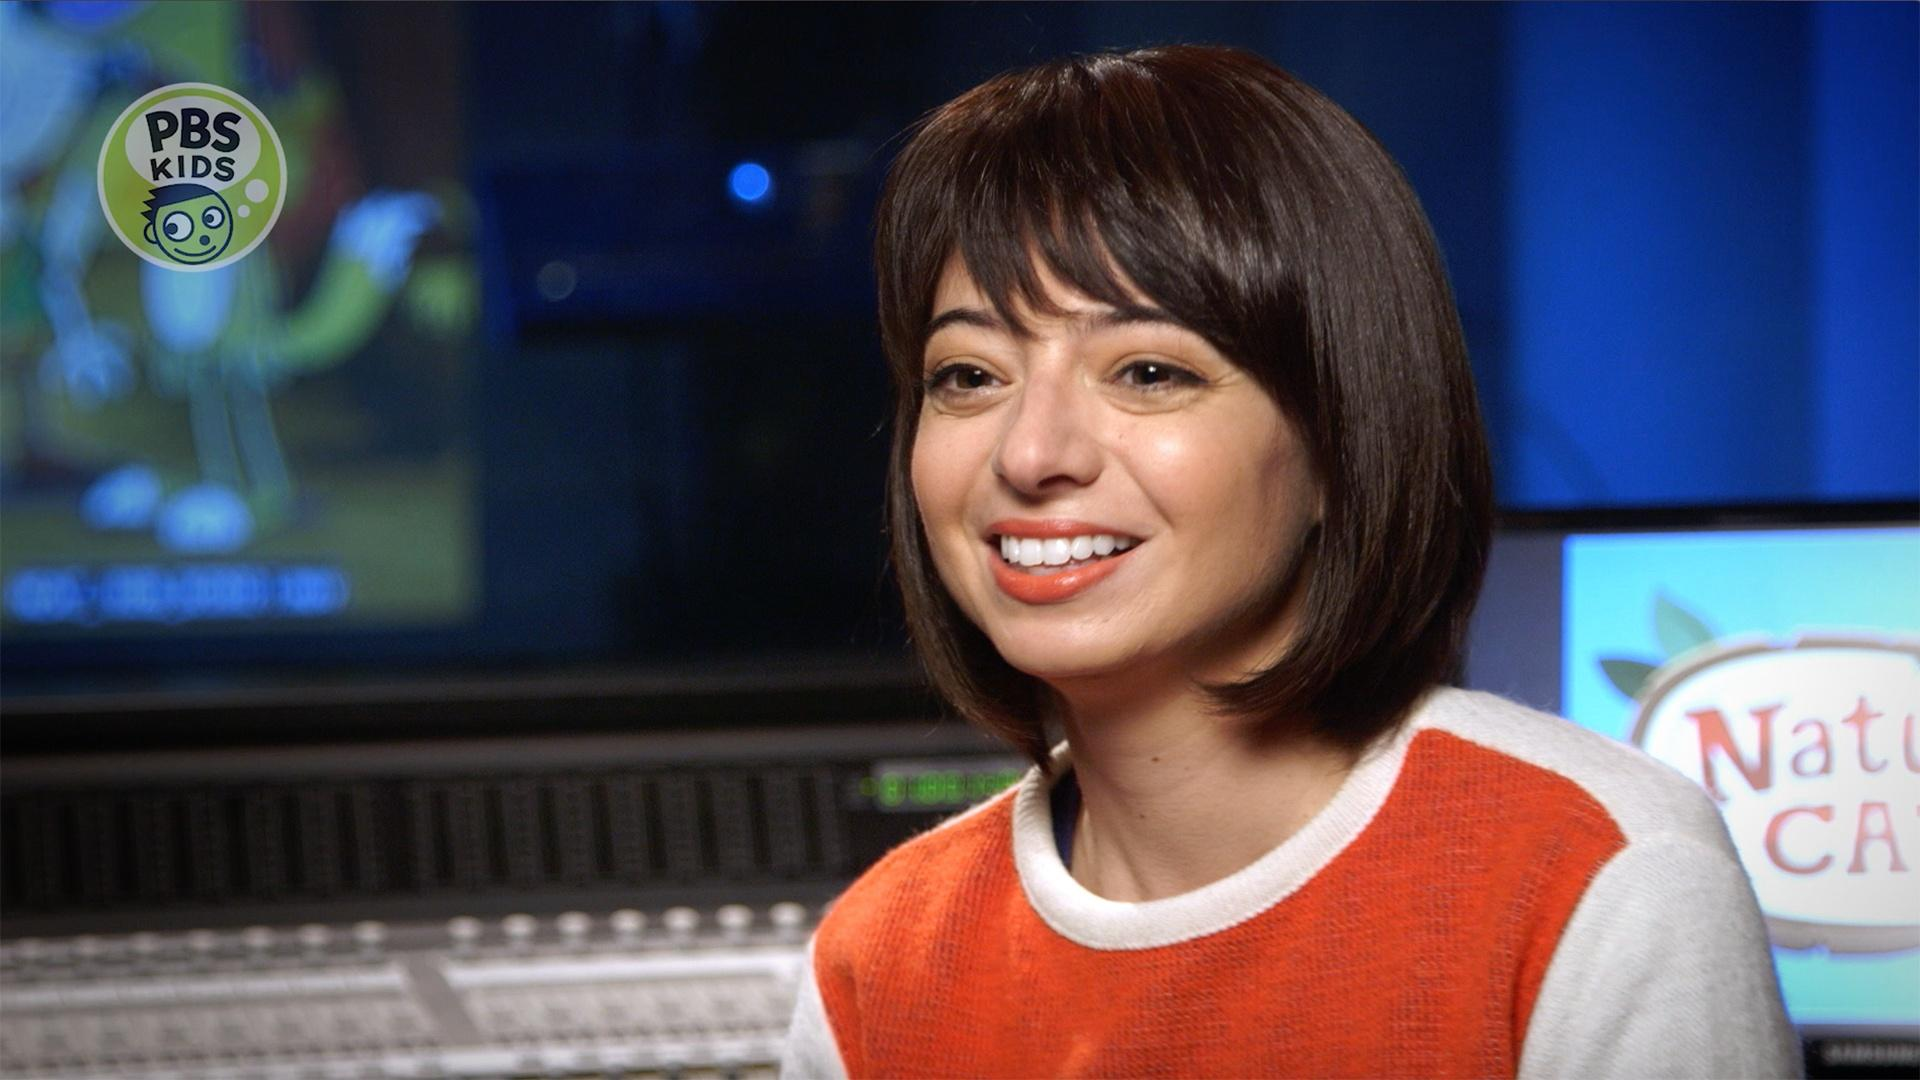 Kate Micucci: Learning Can Be Fun and Silly